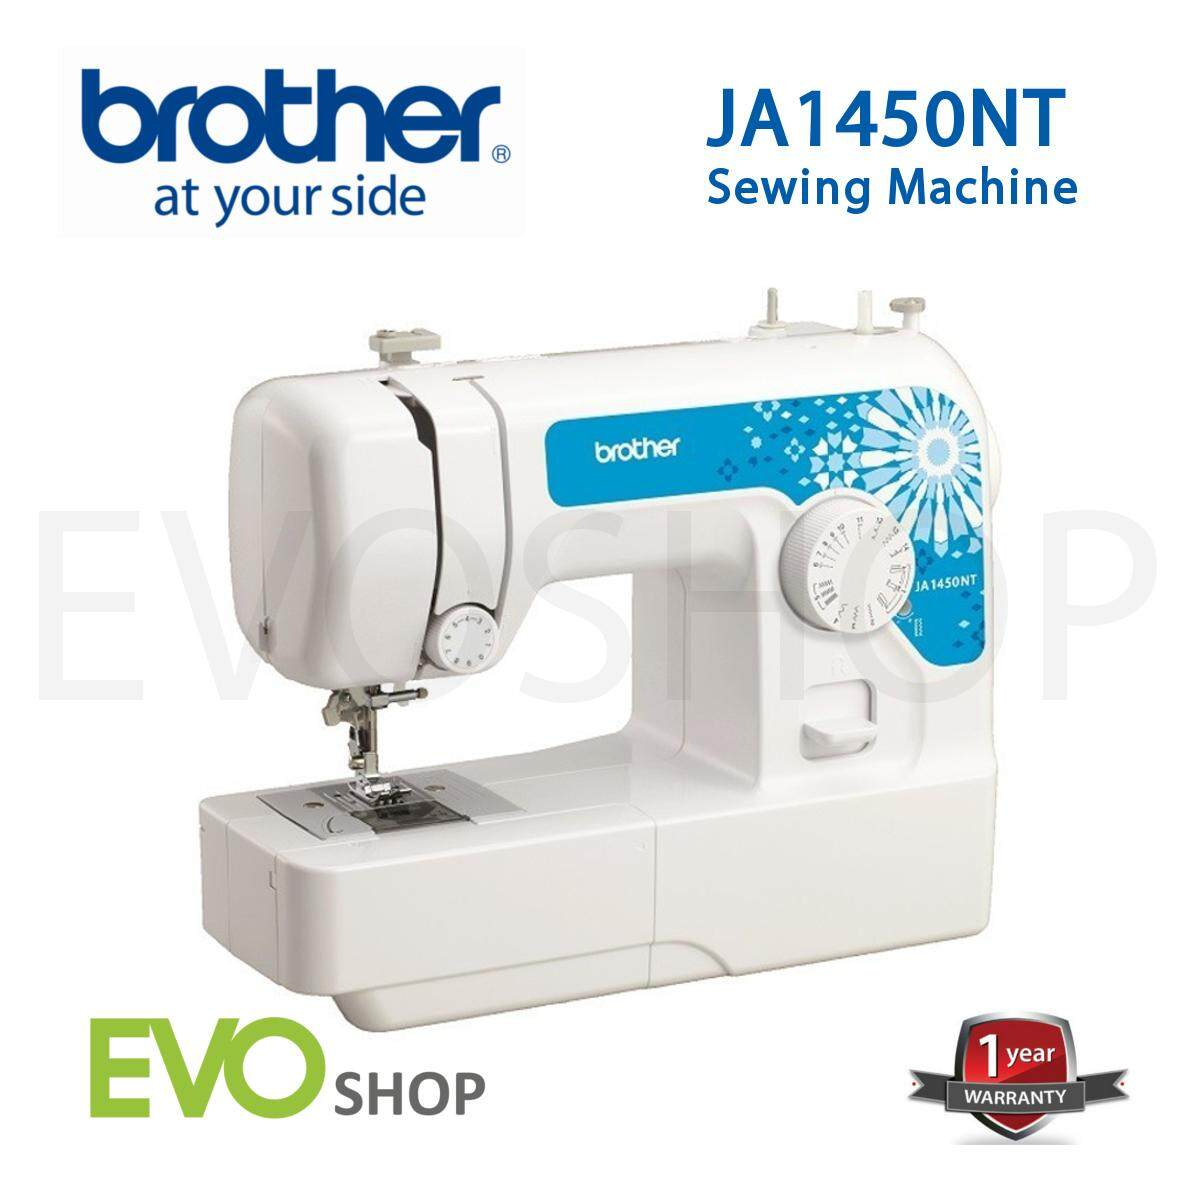 Yang Paling Murah Brother Sewing Machine As2730s Free Extension Ja1450nt Portable Mesin Jahit Ja 1450nt 14 Built In Stitches With Threading System